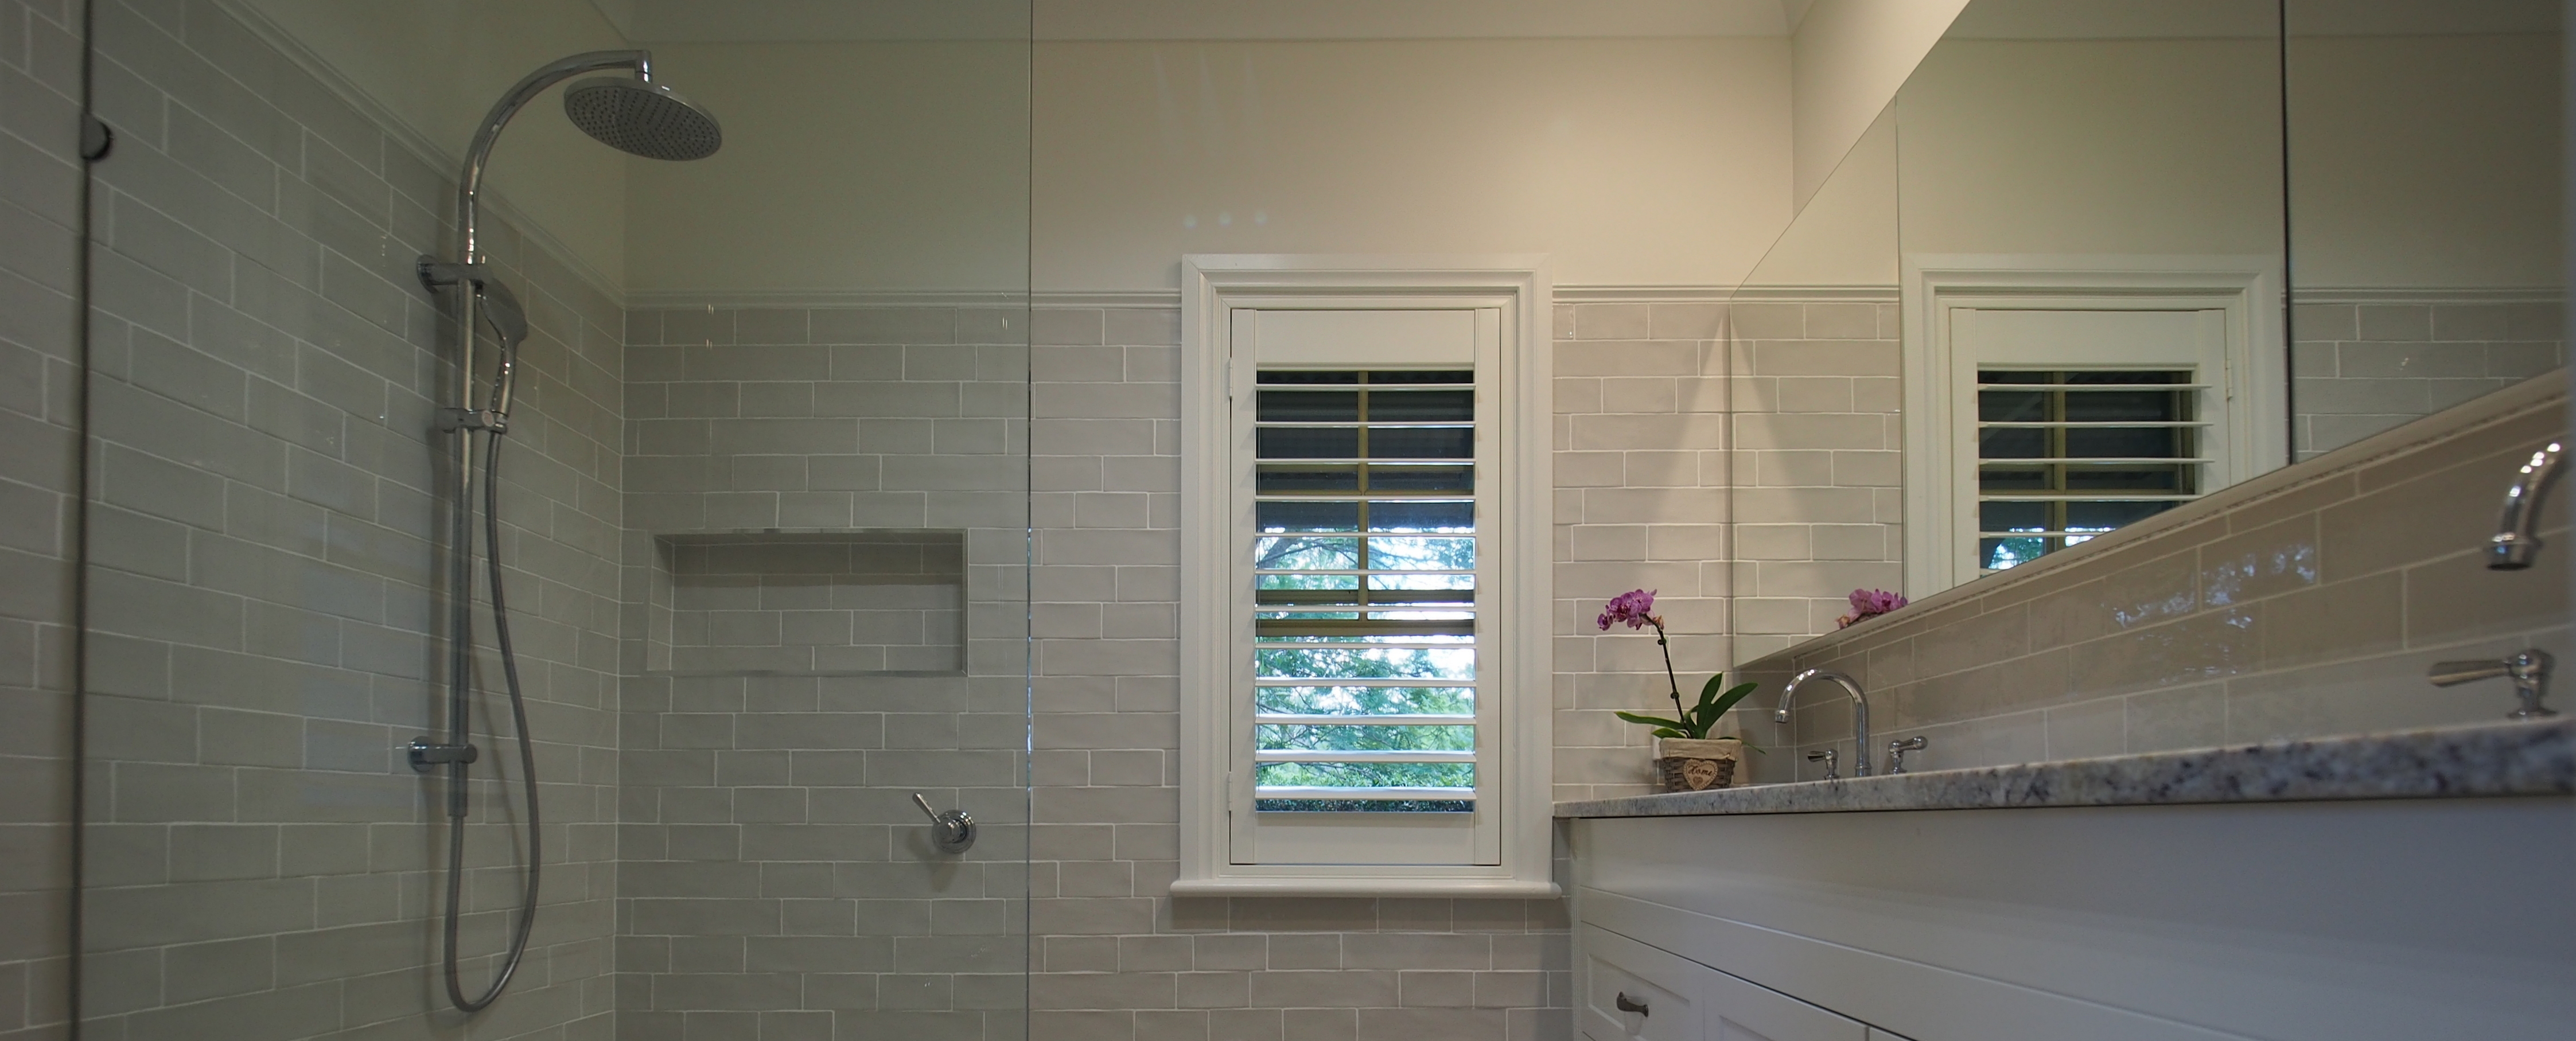 Bathroom Renovations Qld brisbane bathroom renovations | north brisbane